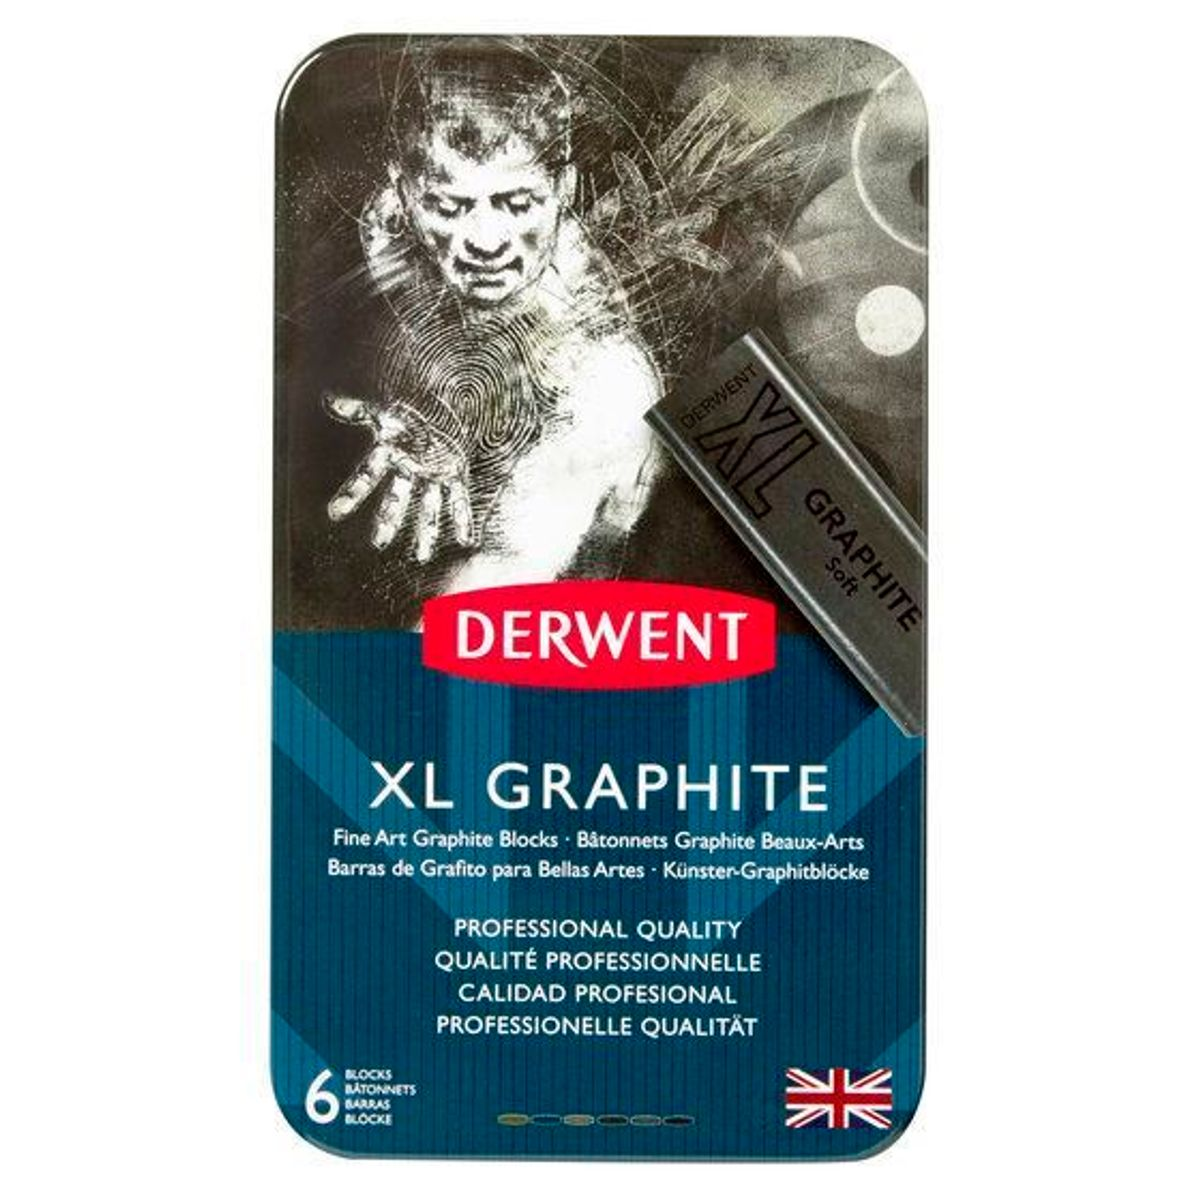 Kit Derwent Xl Graphite C/ 6 Cores